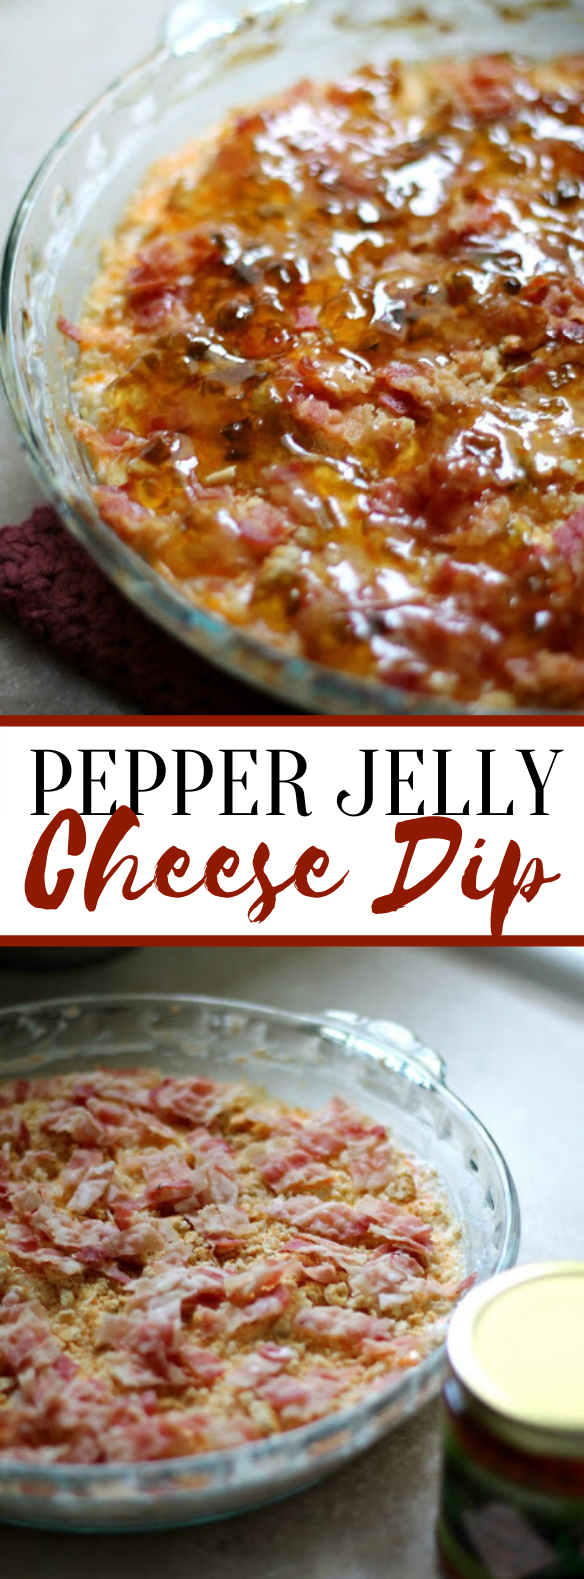 Pepper Jelly Cheese Dip #appetizers #dinner